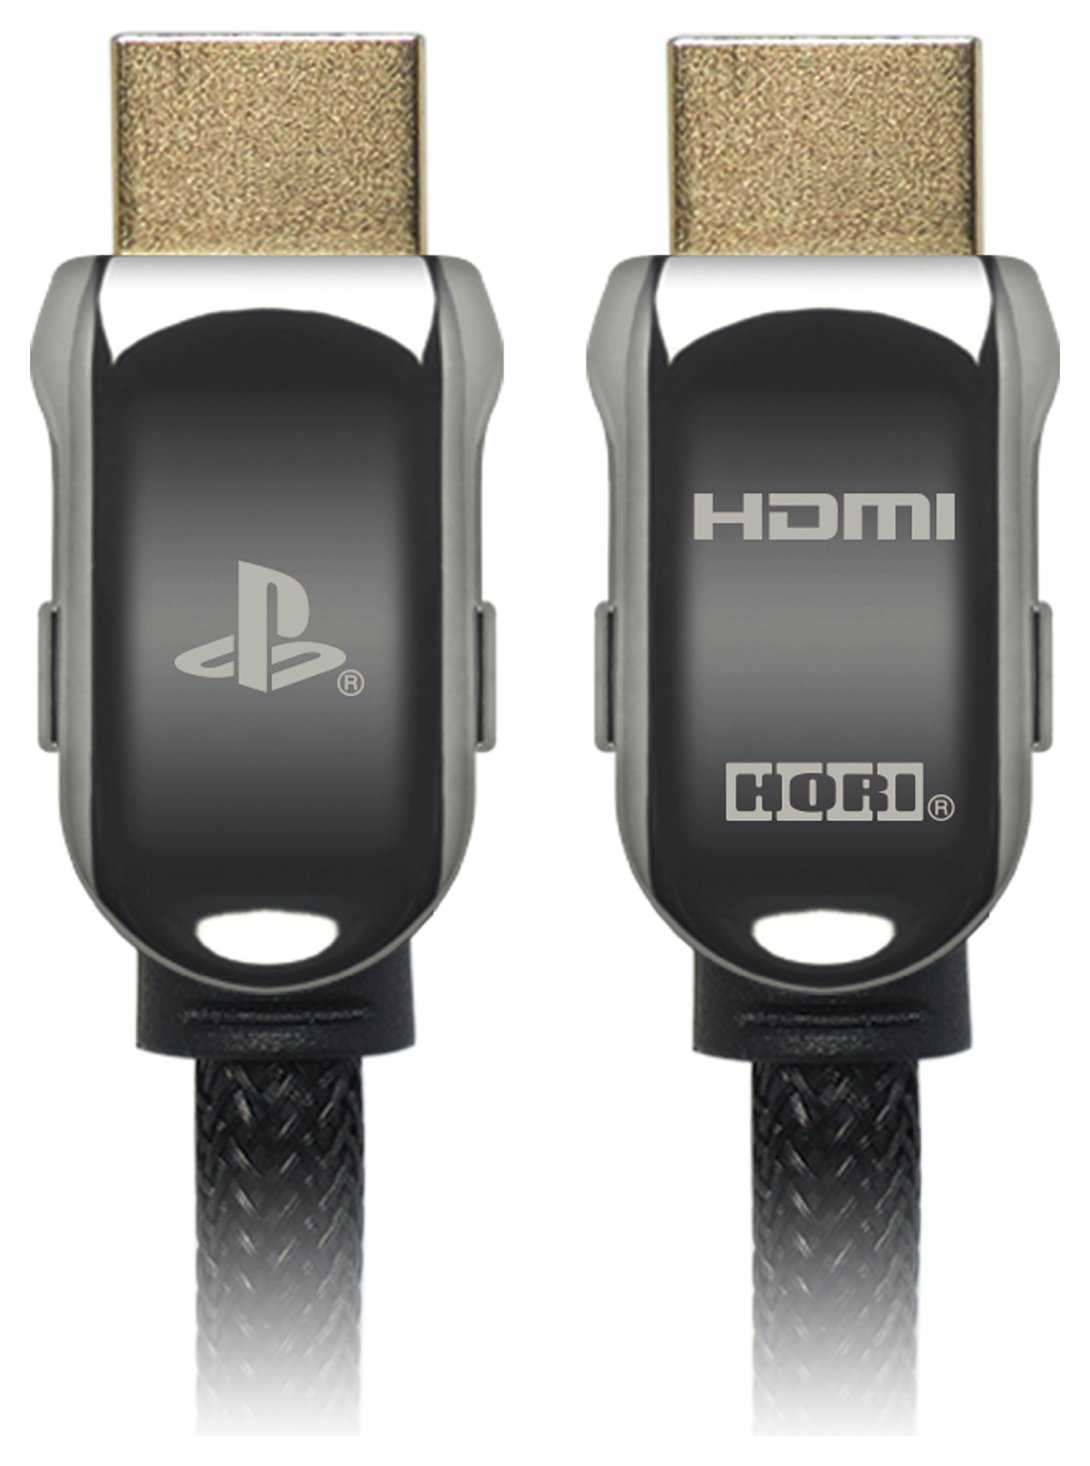 official sony hdmi cable for ps4 7198276 argos price. Black Bedroom Furniture Sets. Home Design Ideas